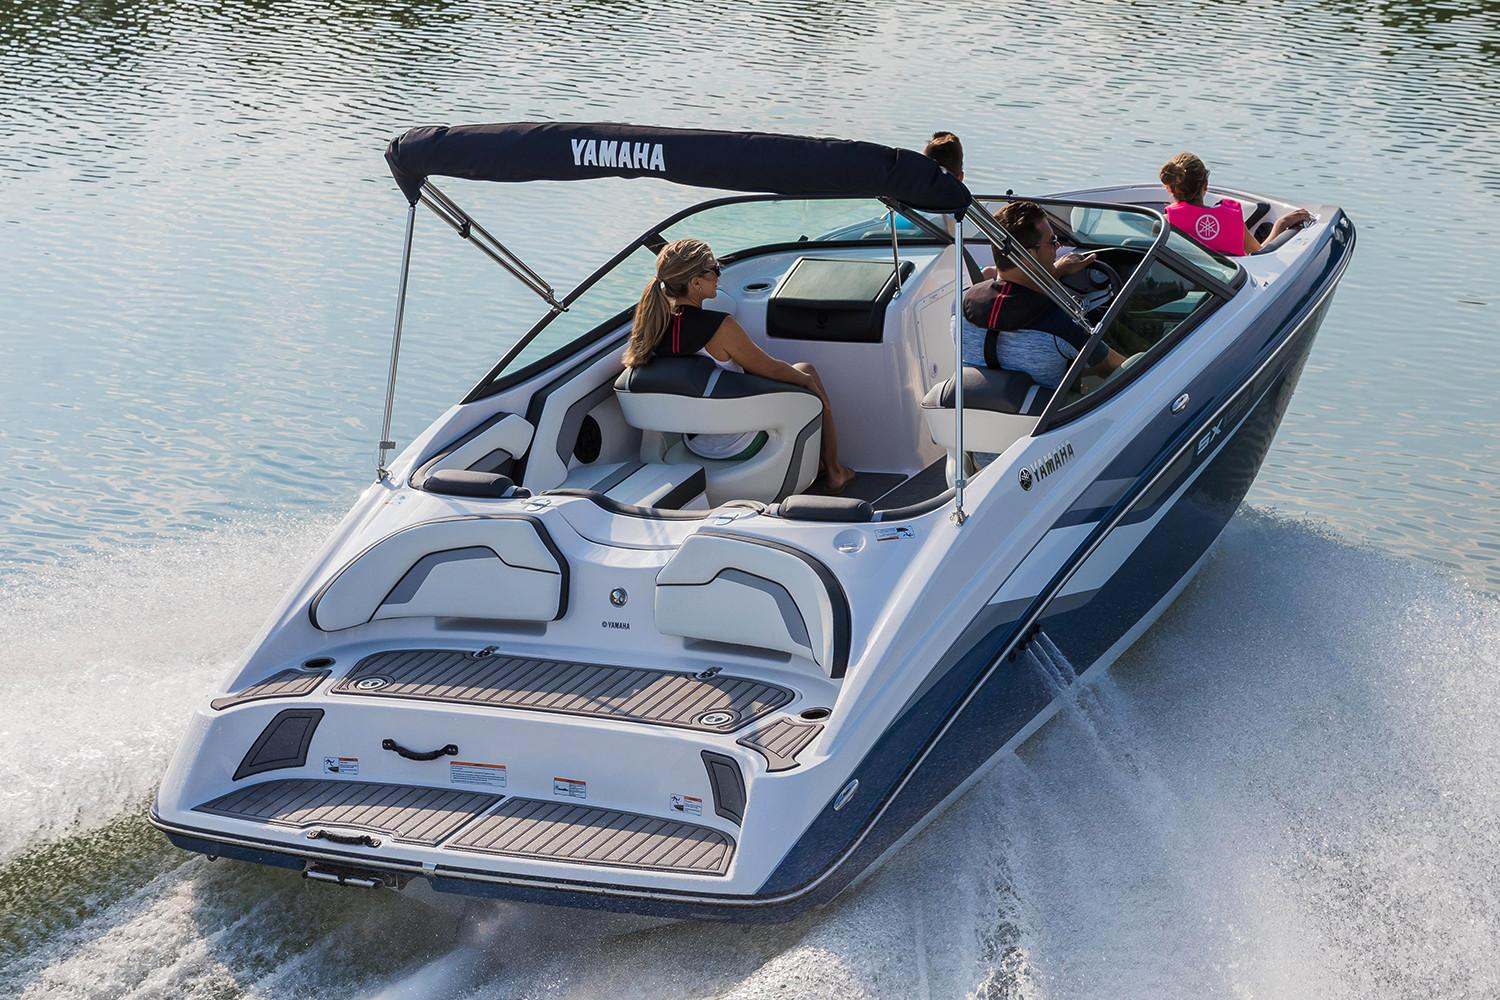 2018 yamaha sx195 power boats inboard pompano beach florida for Yamaha installment financing